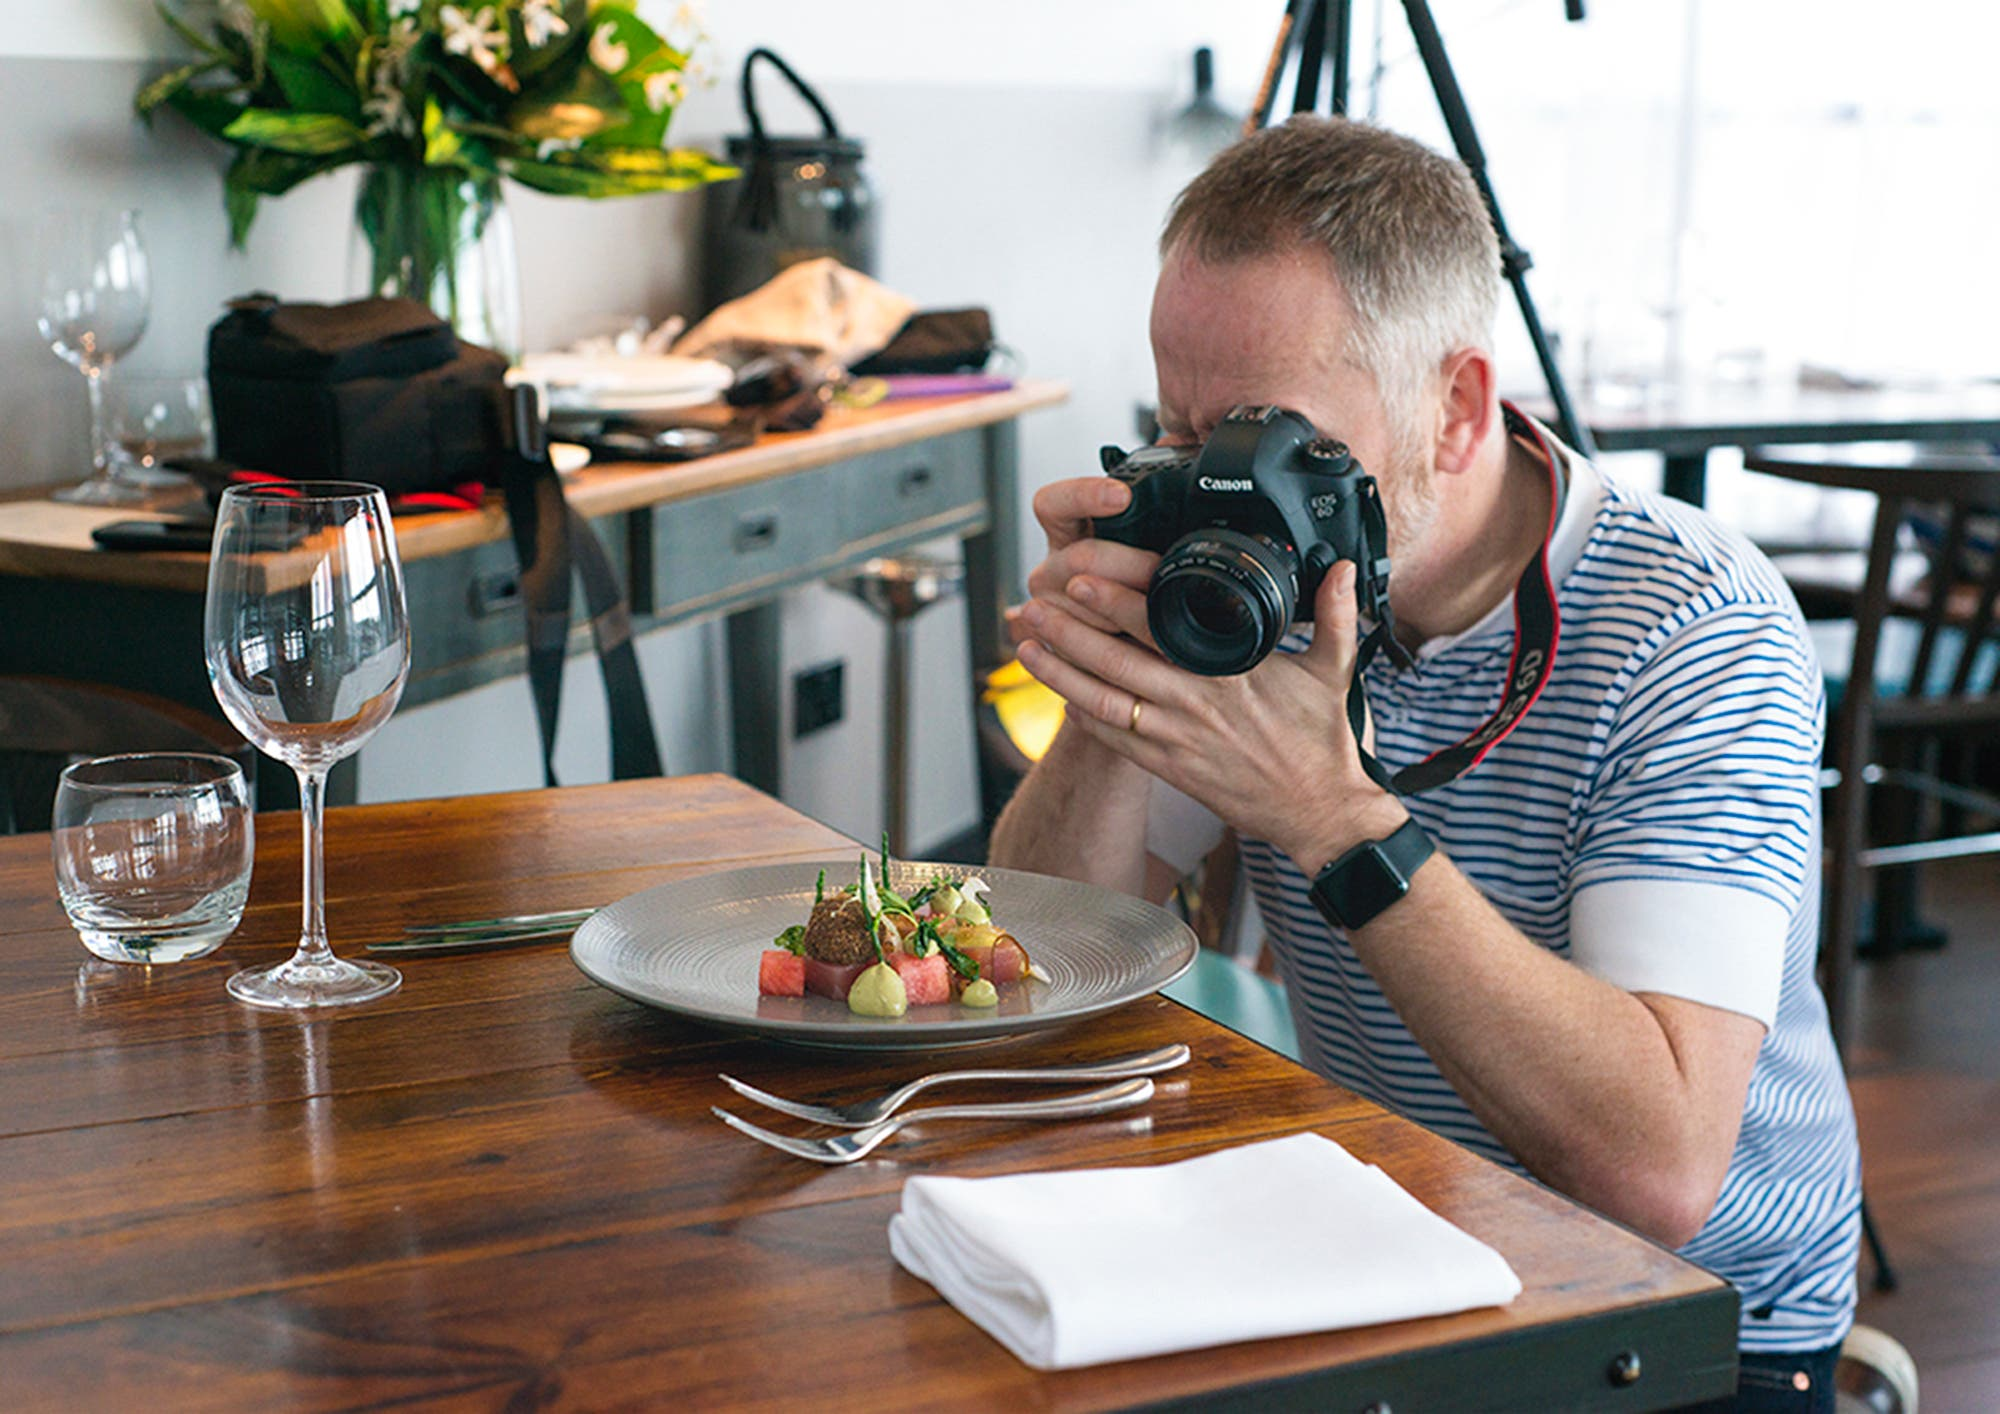 5 Tips to Take Better Restaurant Food Pictures